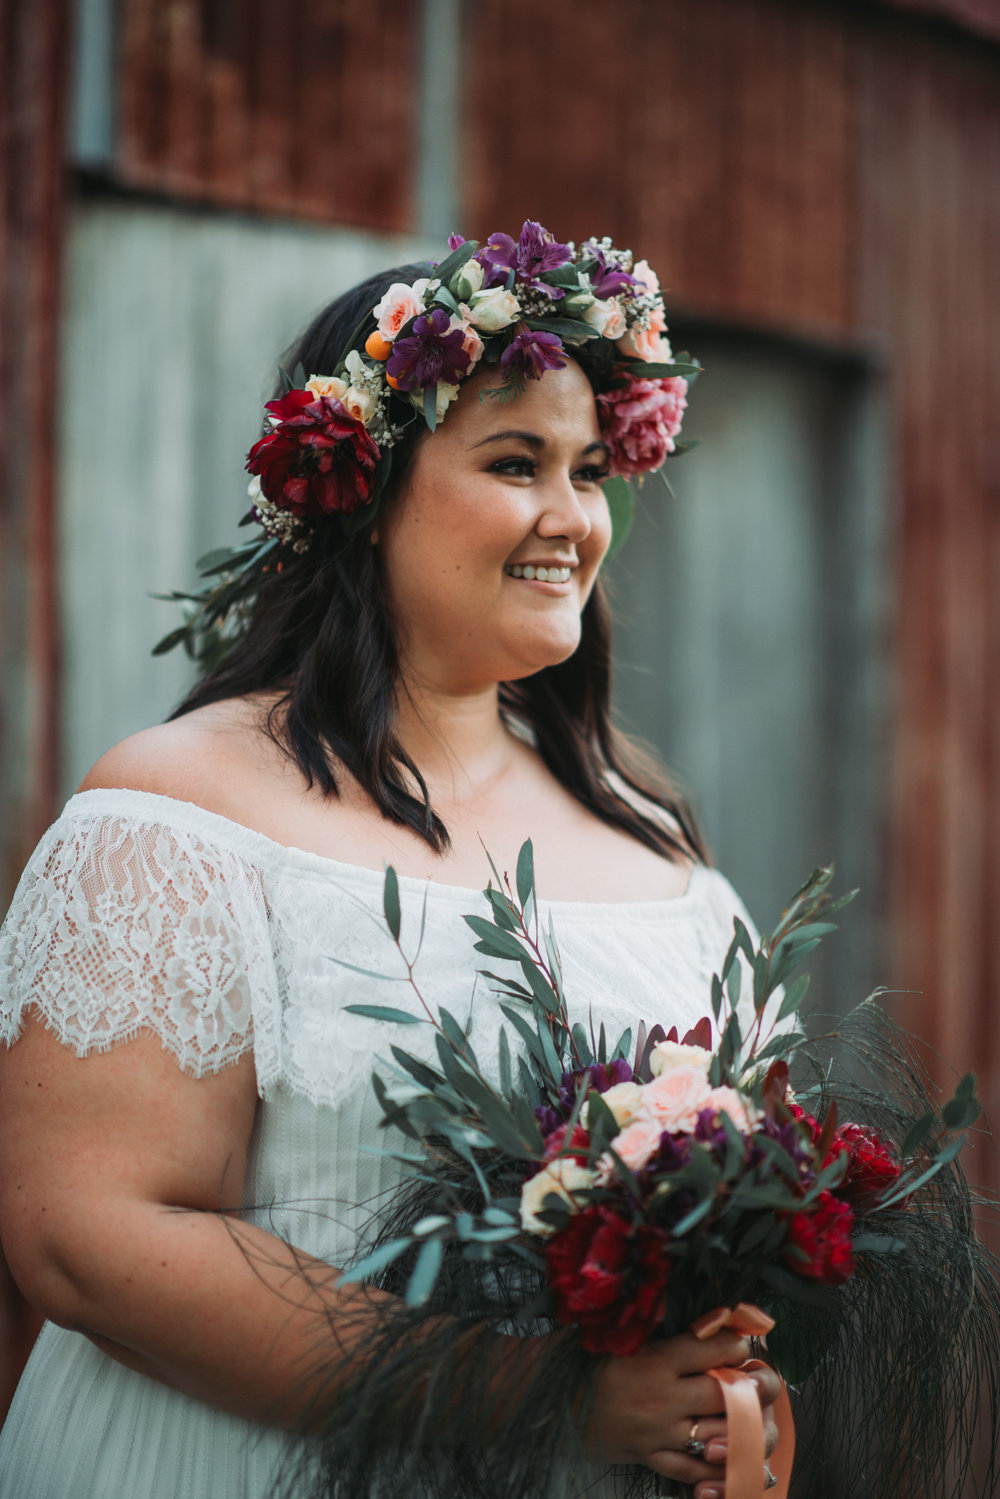 Engagement Photoshoot Inspiration Brisbane Wedding Photography Confetti Bright Flowers Bouquet Floral Crown Rustic Shed Backdrop Old Petrie Town Lovelenscapes Photography www.lovelenscapes.com